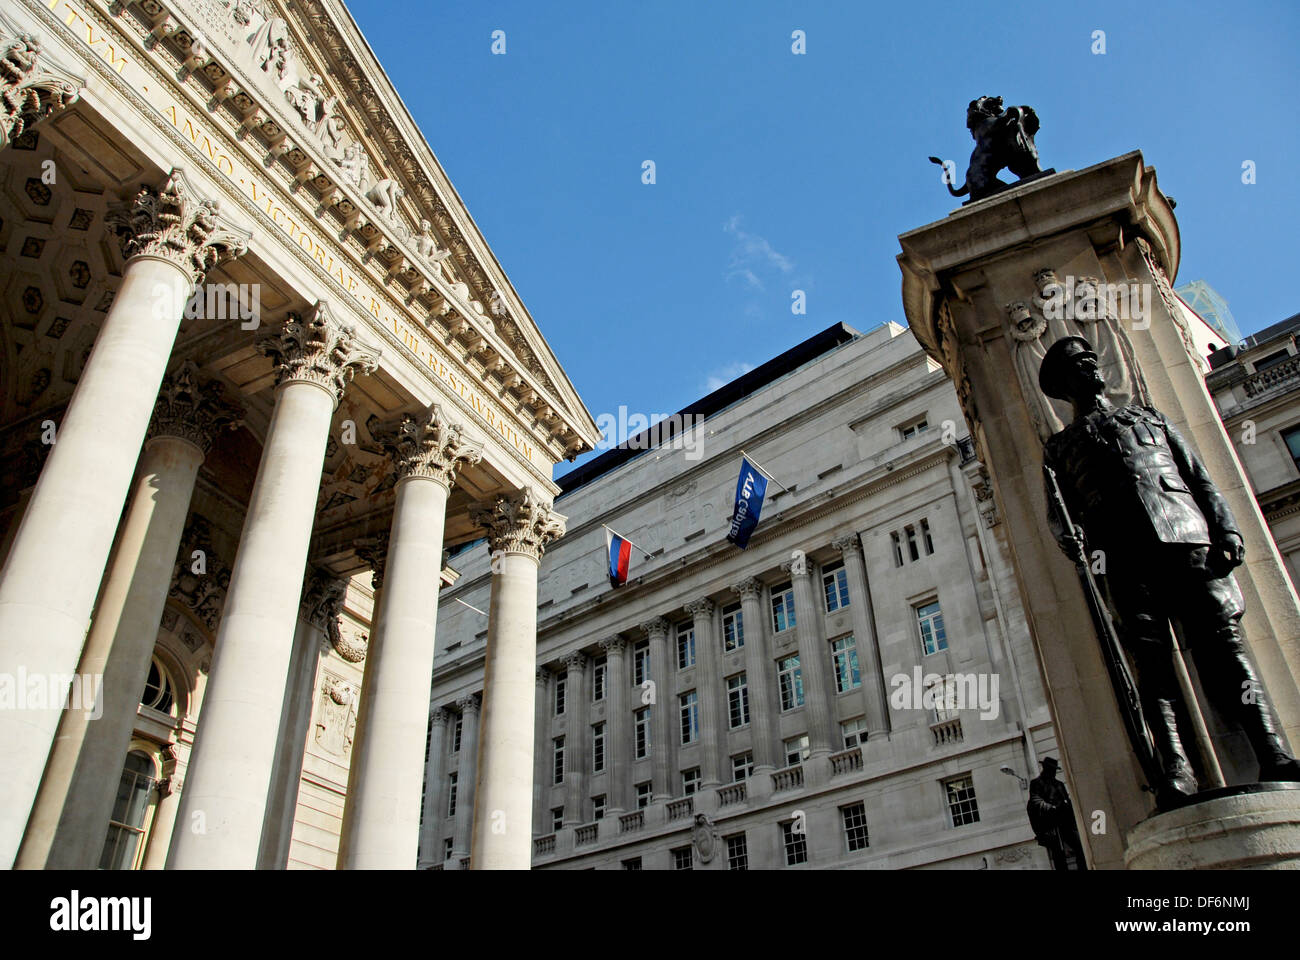 First World War monument in front of the Royal Exchange luxury shopping centre in The City, London, Great Britain, Europe. - Stock Image